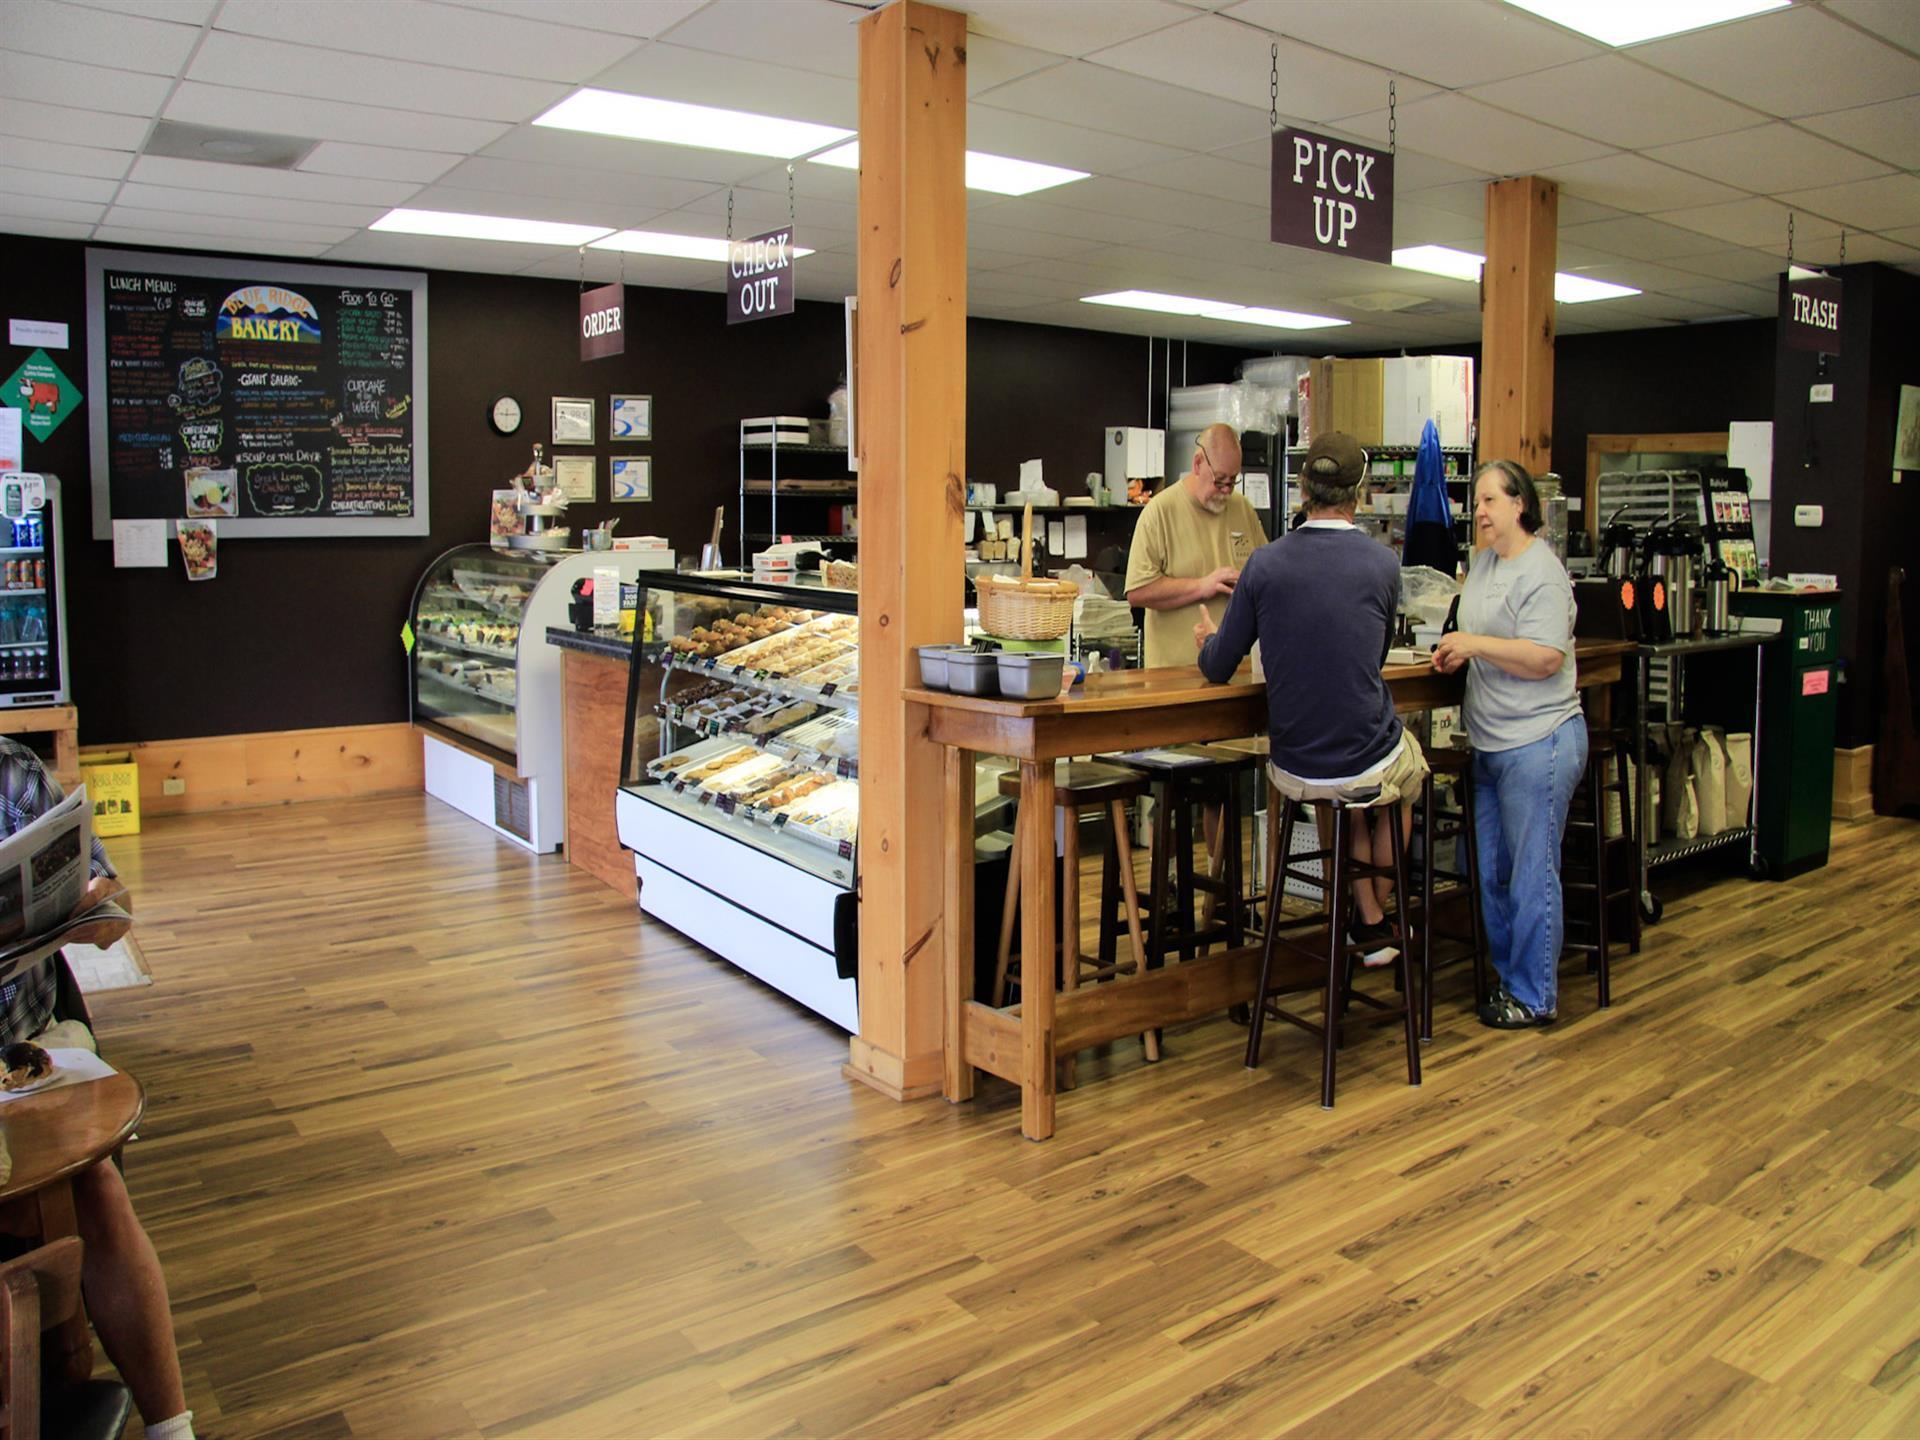 interior shot of bakery